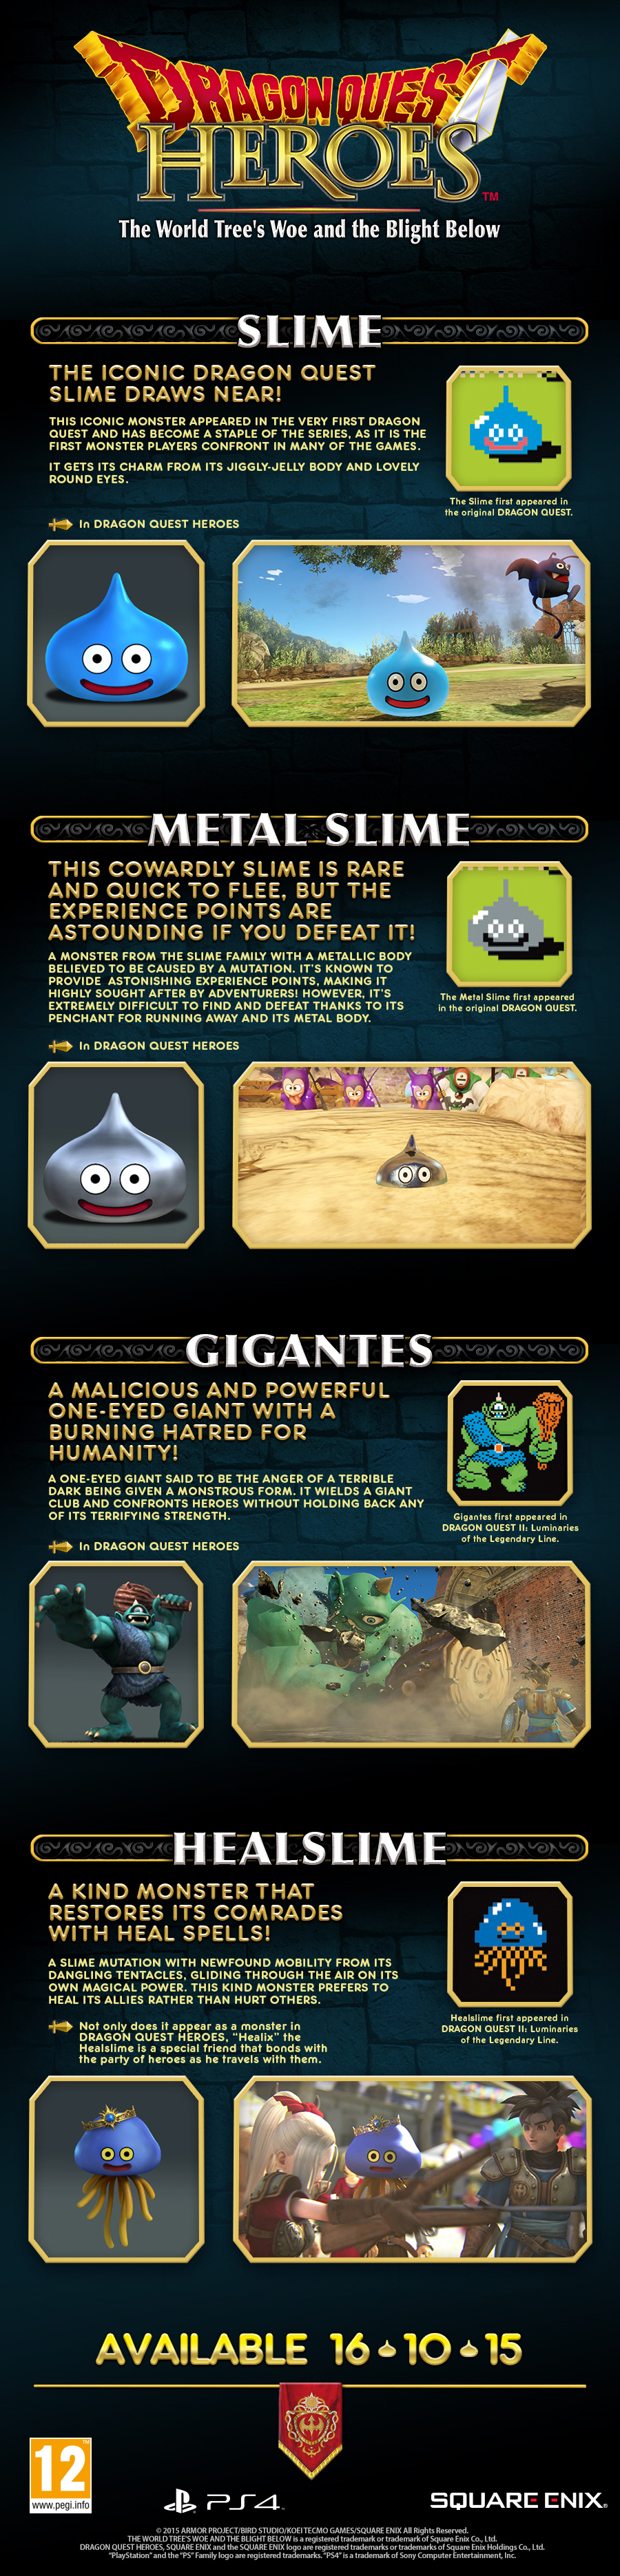 infografica-dragon-quest-heroes